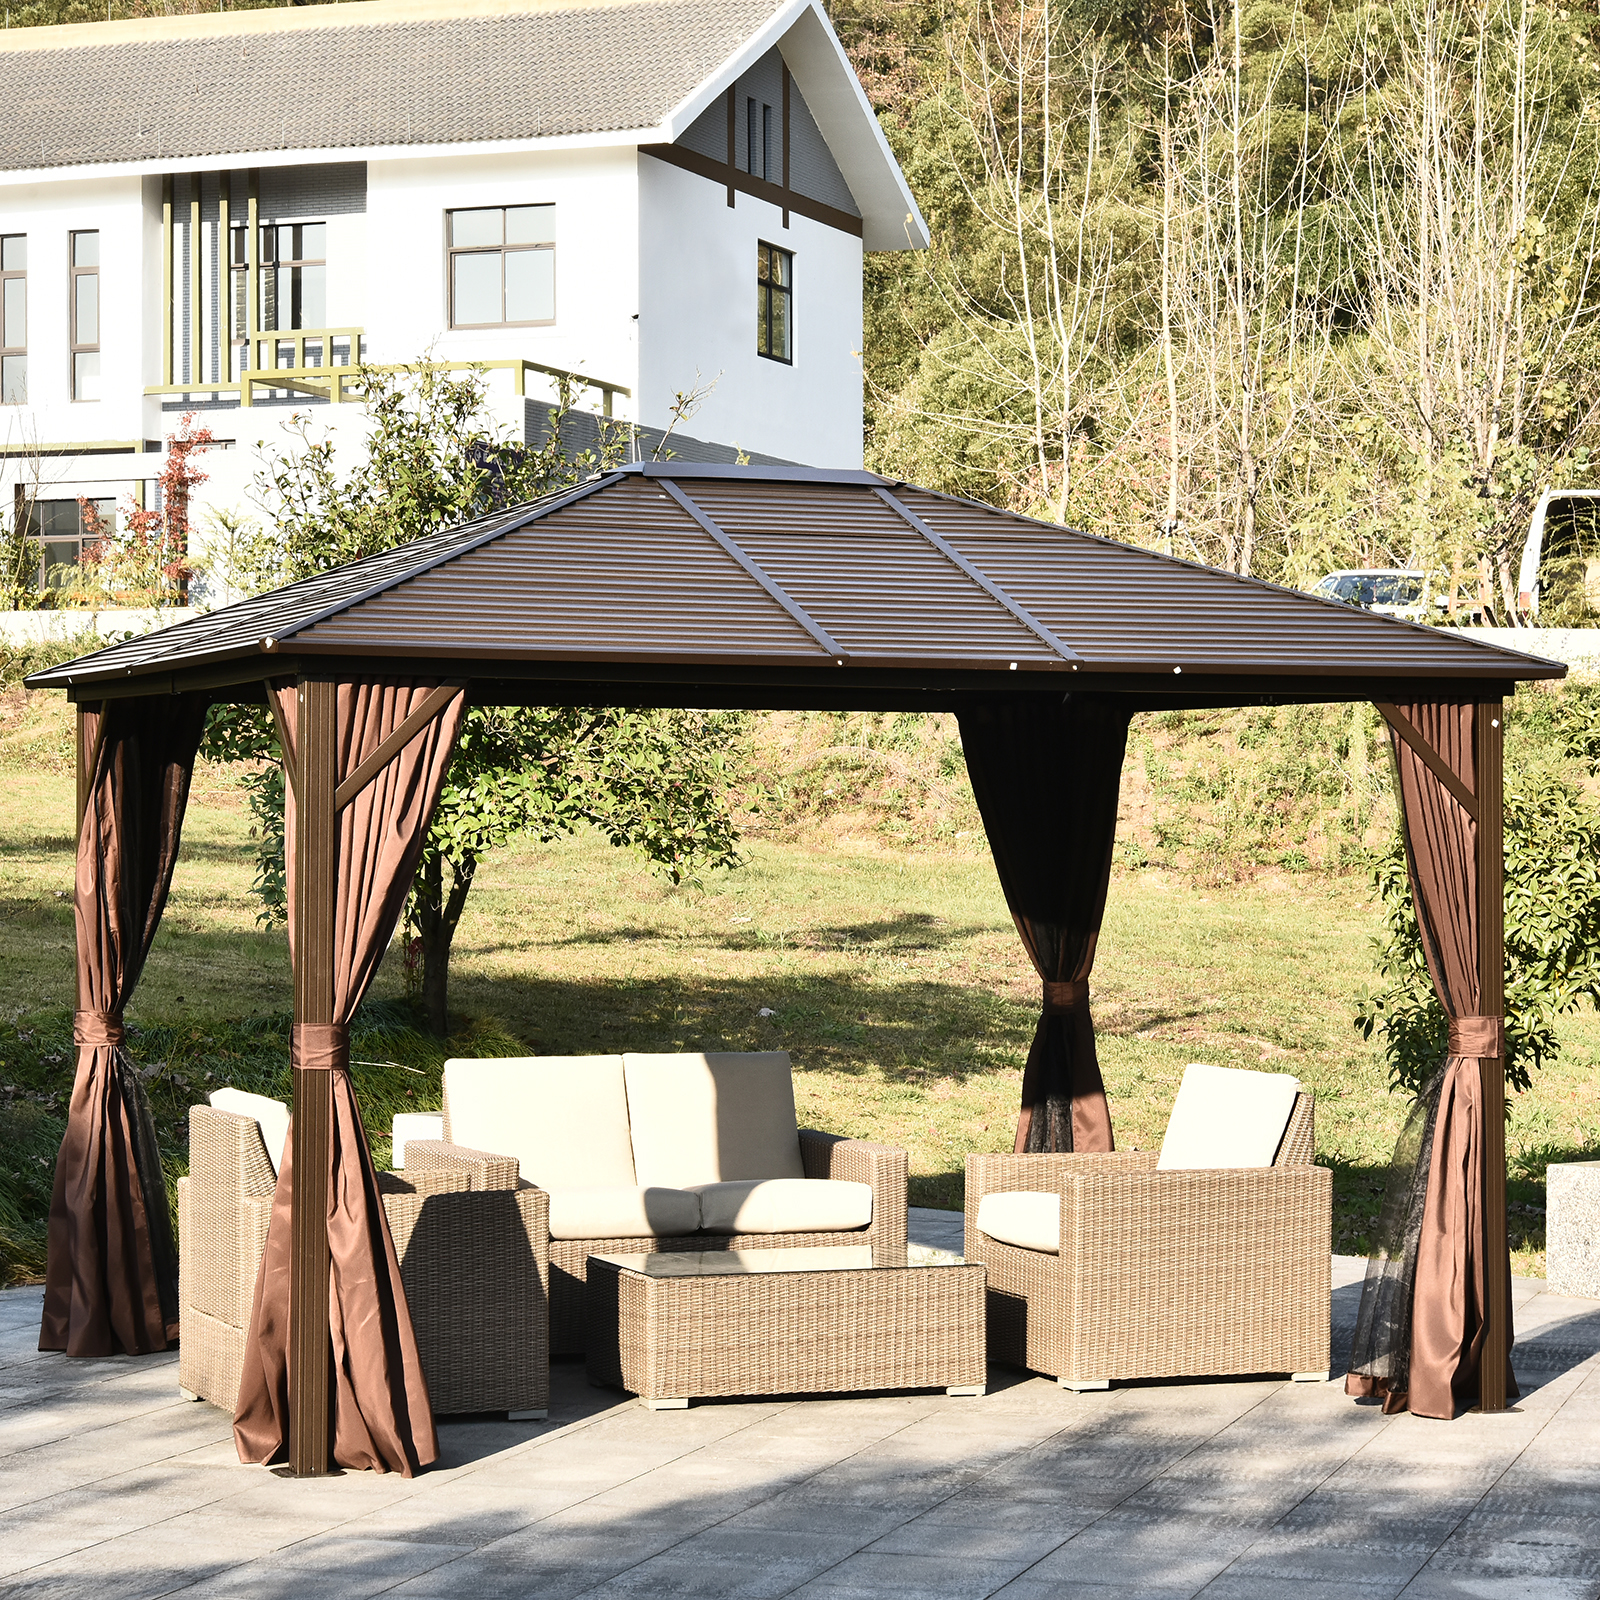 details about 10 x 12 deluxe gazebo patio canopy hard top outdoor event w double netting